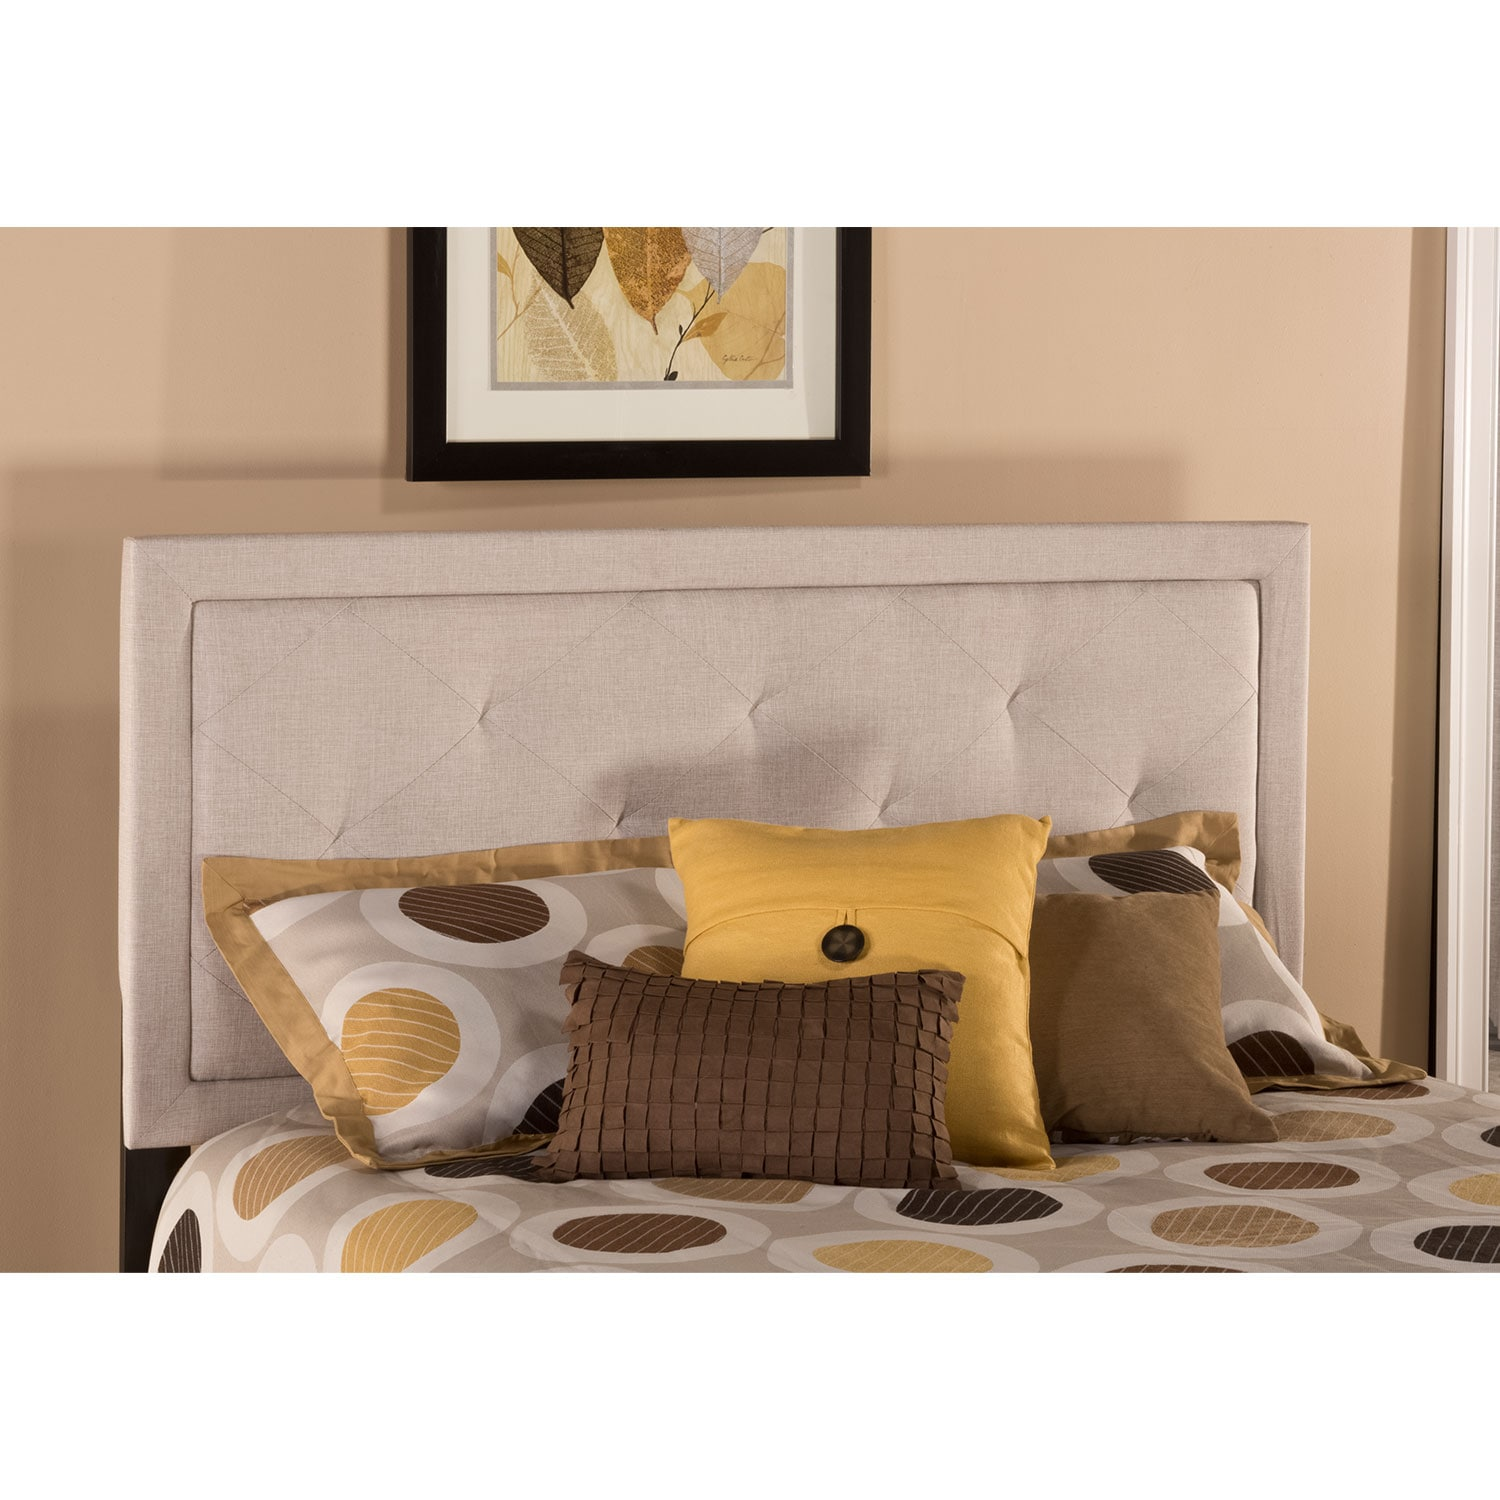 Becker Twin Headboard - Cream